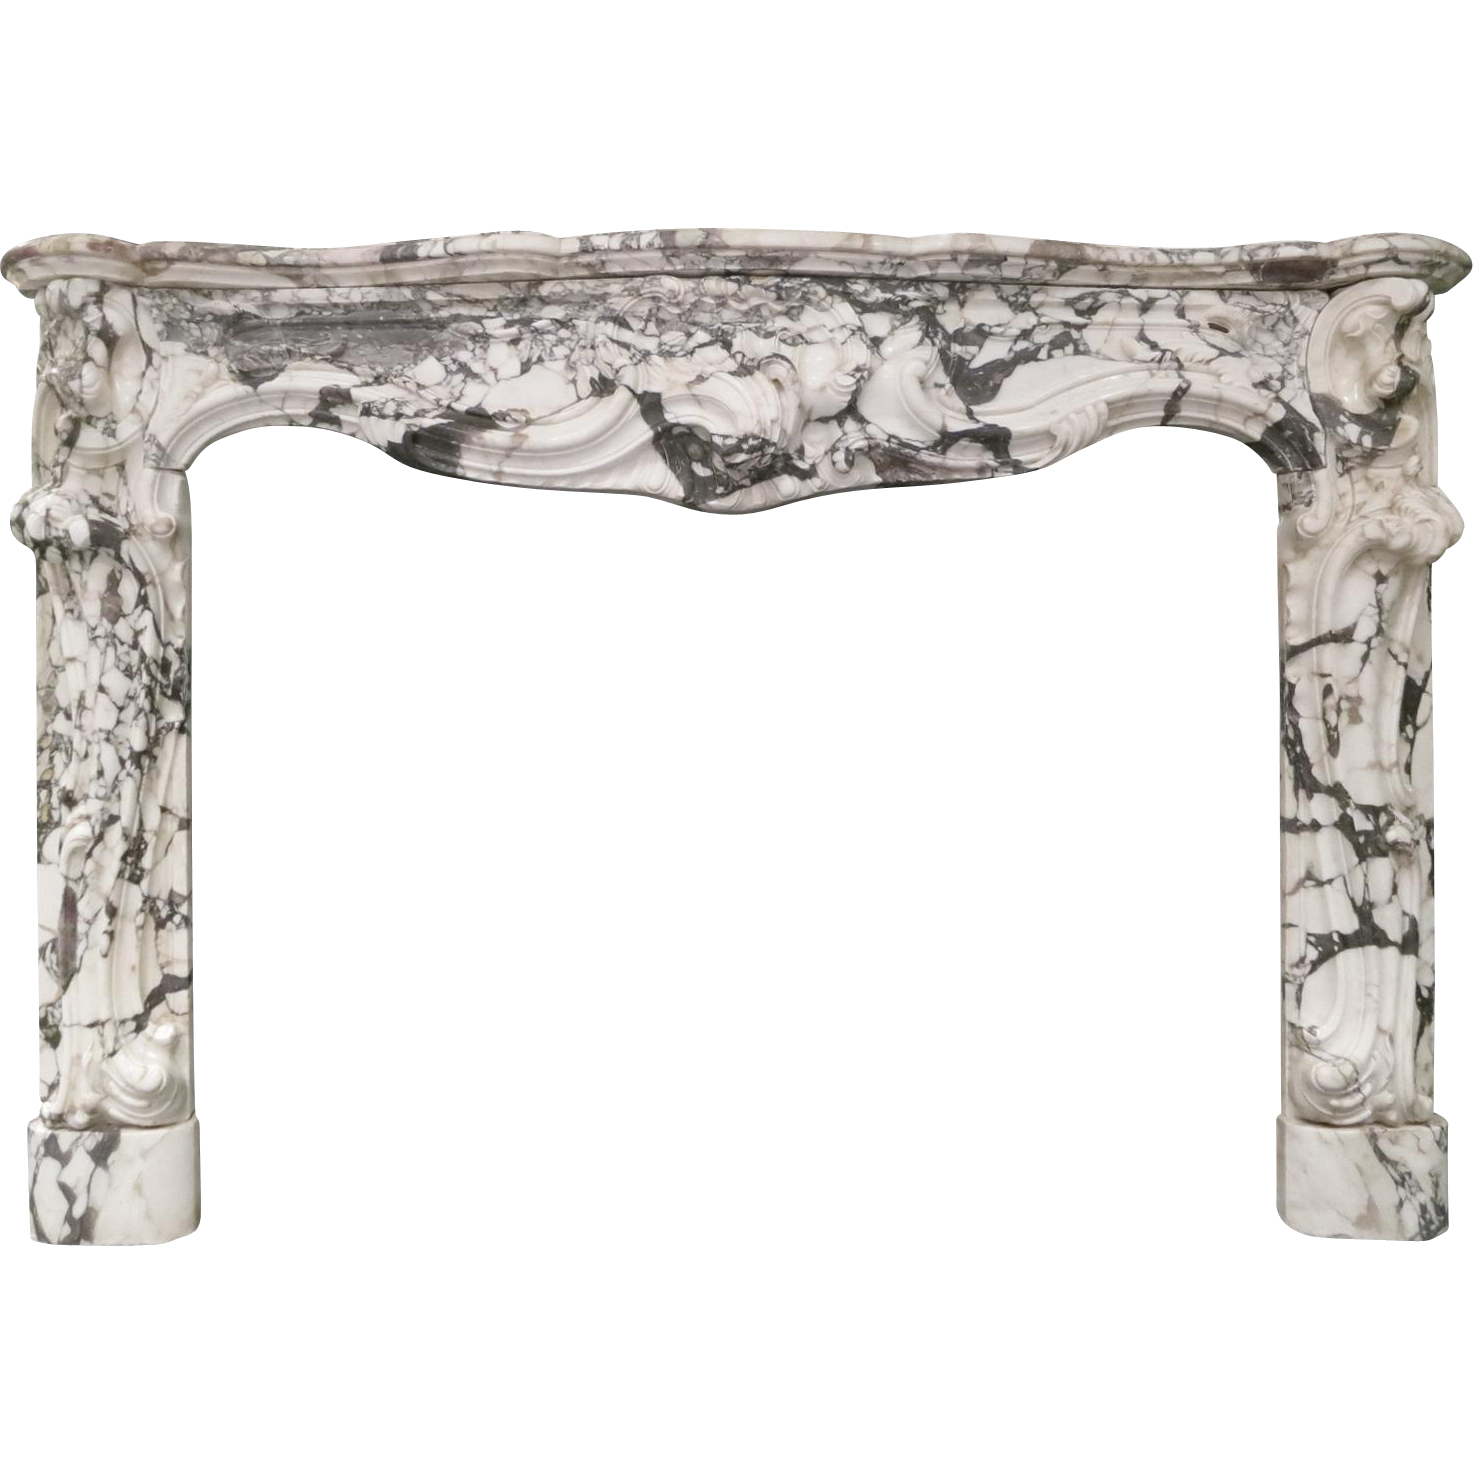 Fireplace clipart fireplace mantle. A large rococo french